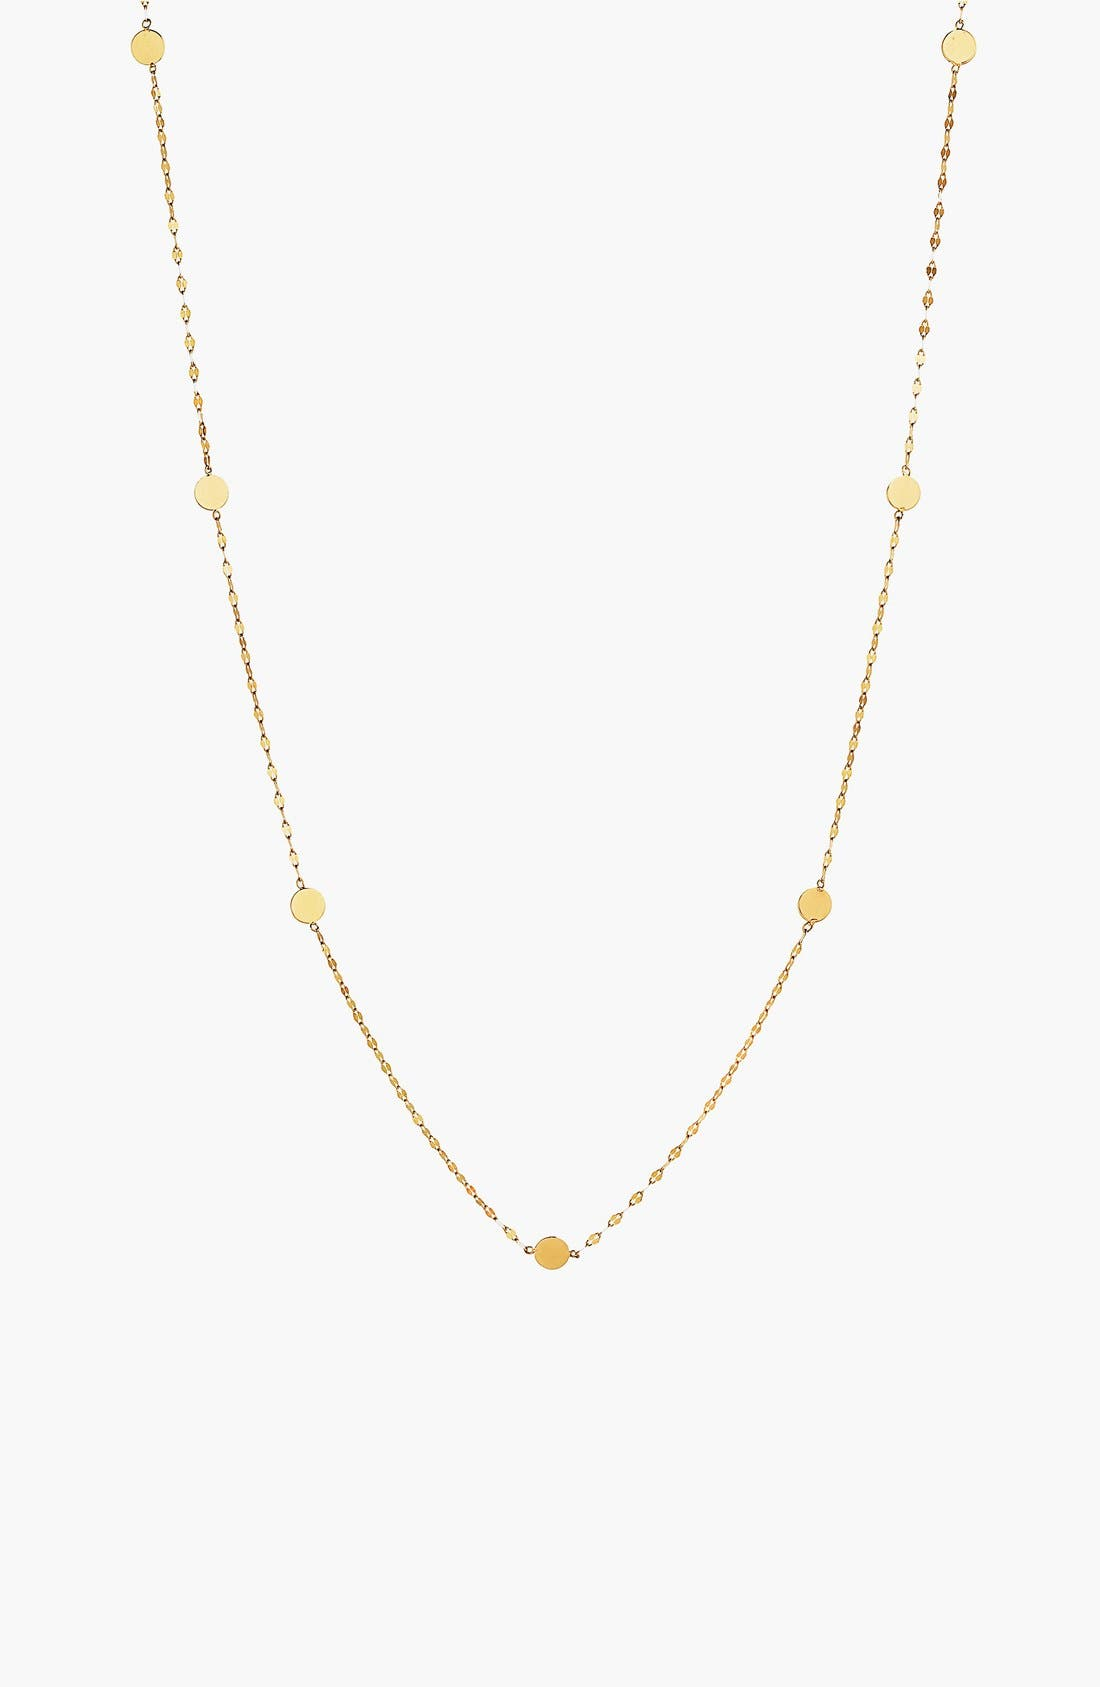 Lana Jewelry 'Ombré' Disc Station Necklace